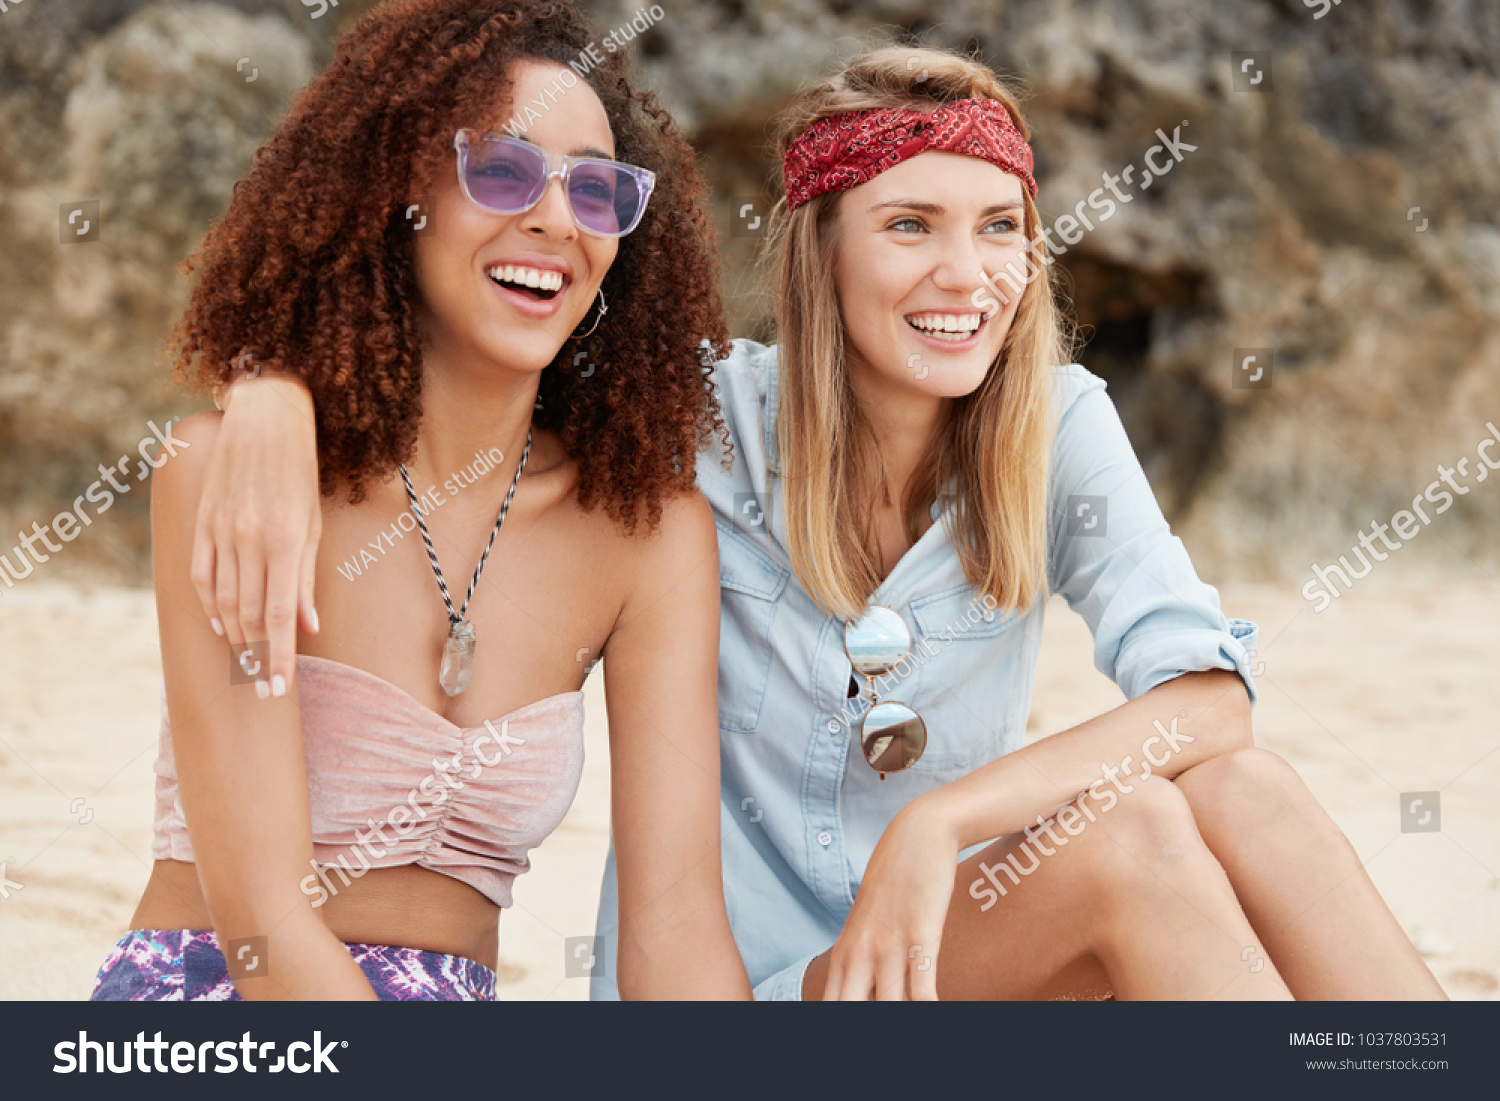 Homosexual relationships and love concept. Female lesbians have positive  looks, hug each other,